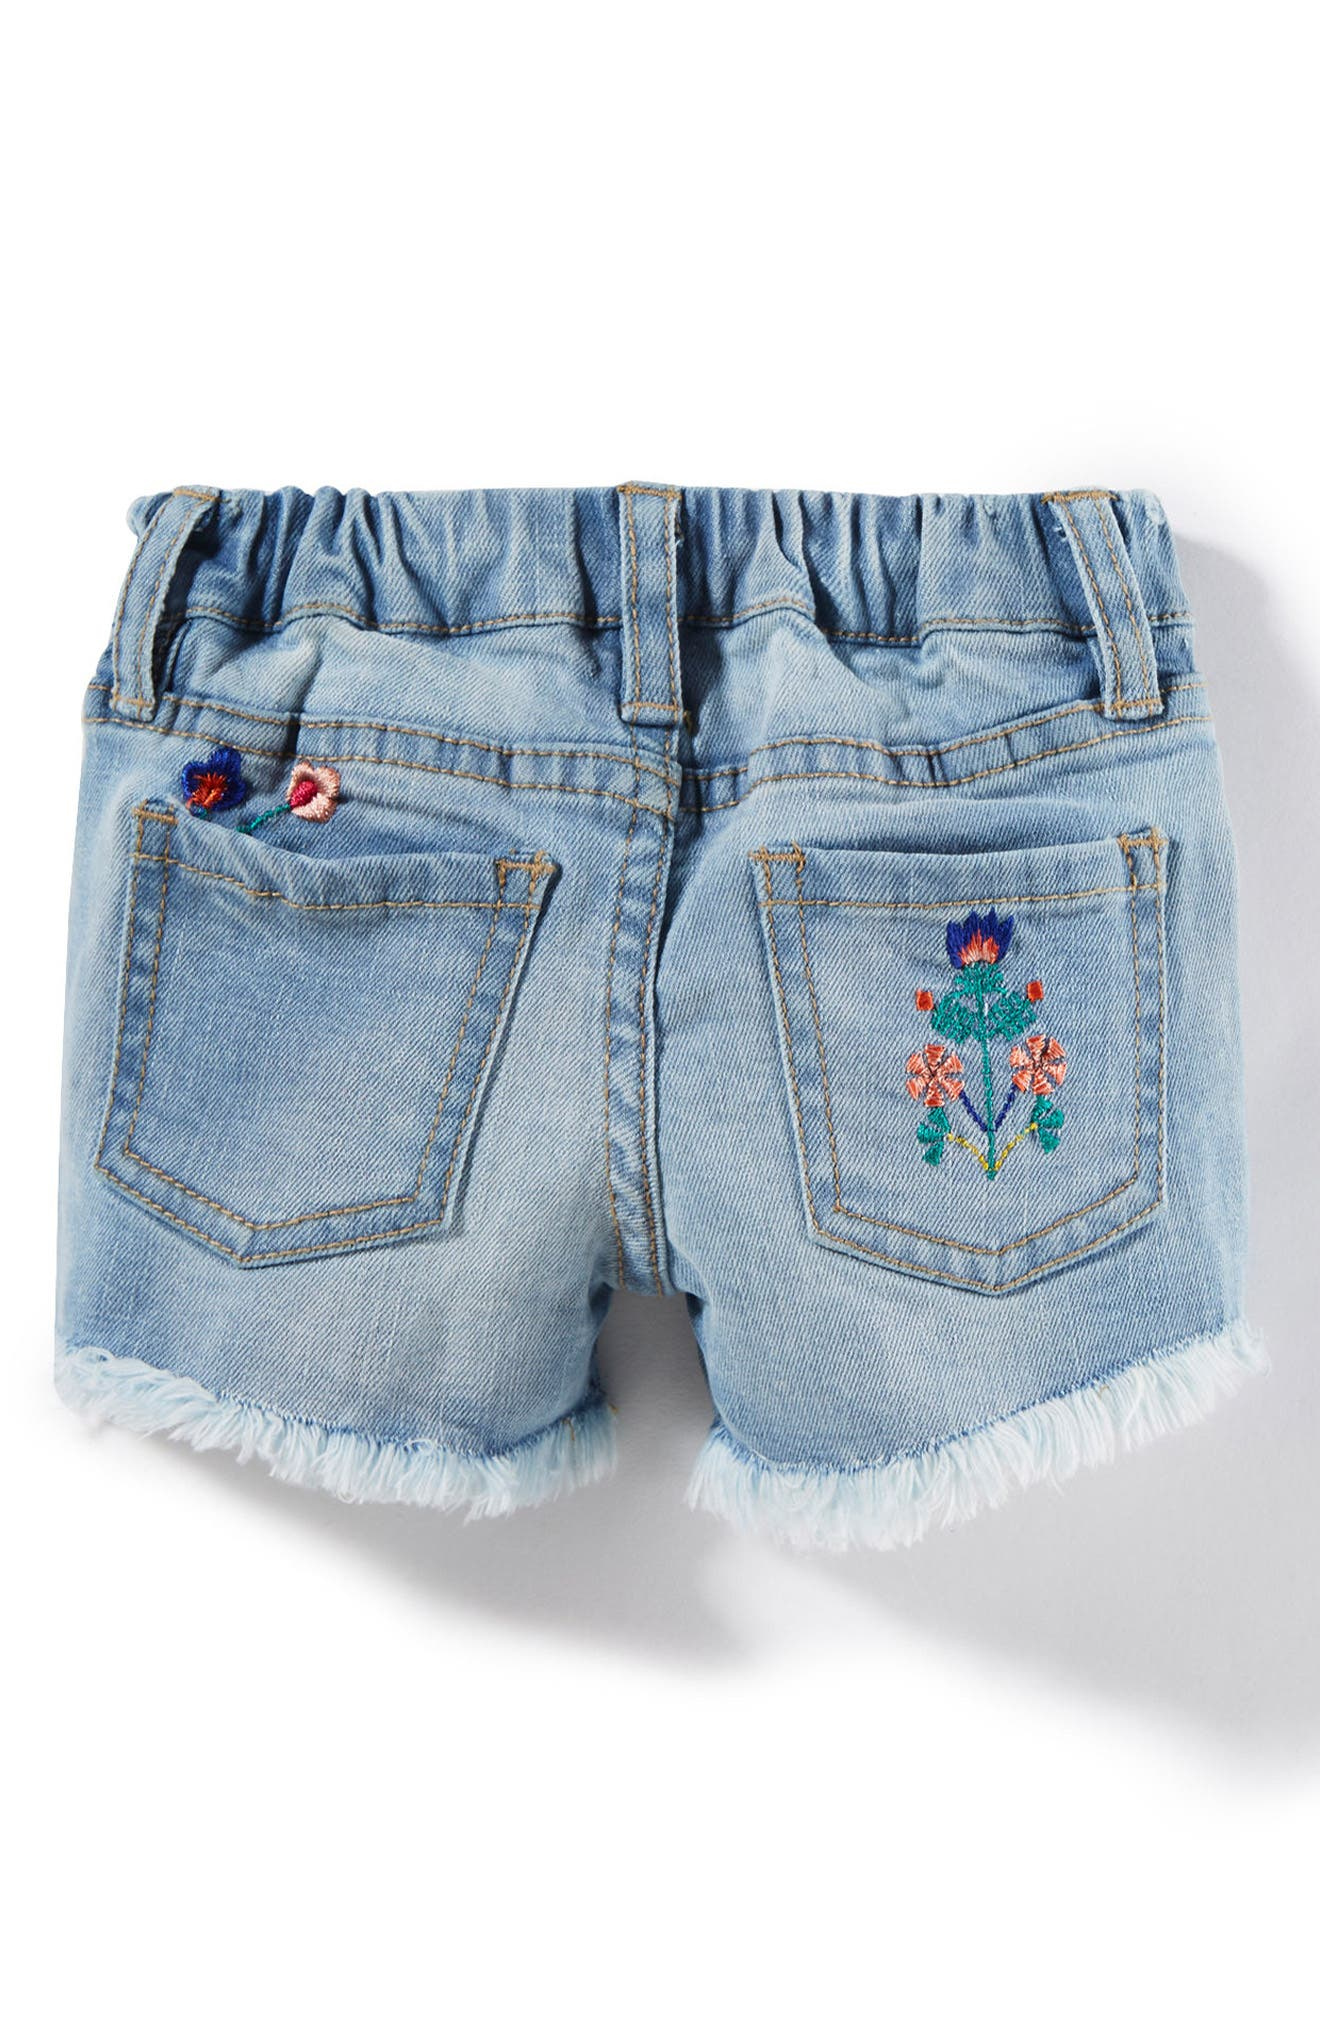 Griffin Embroidered Cuff Denim Shorts,                             Alternate thumbnail 2, color,